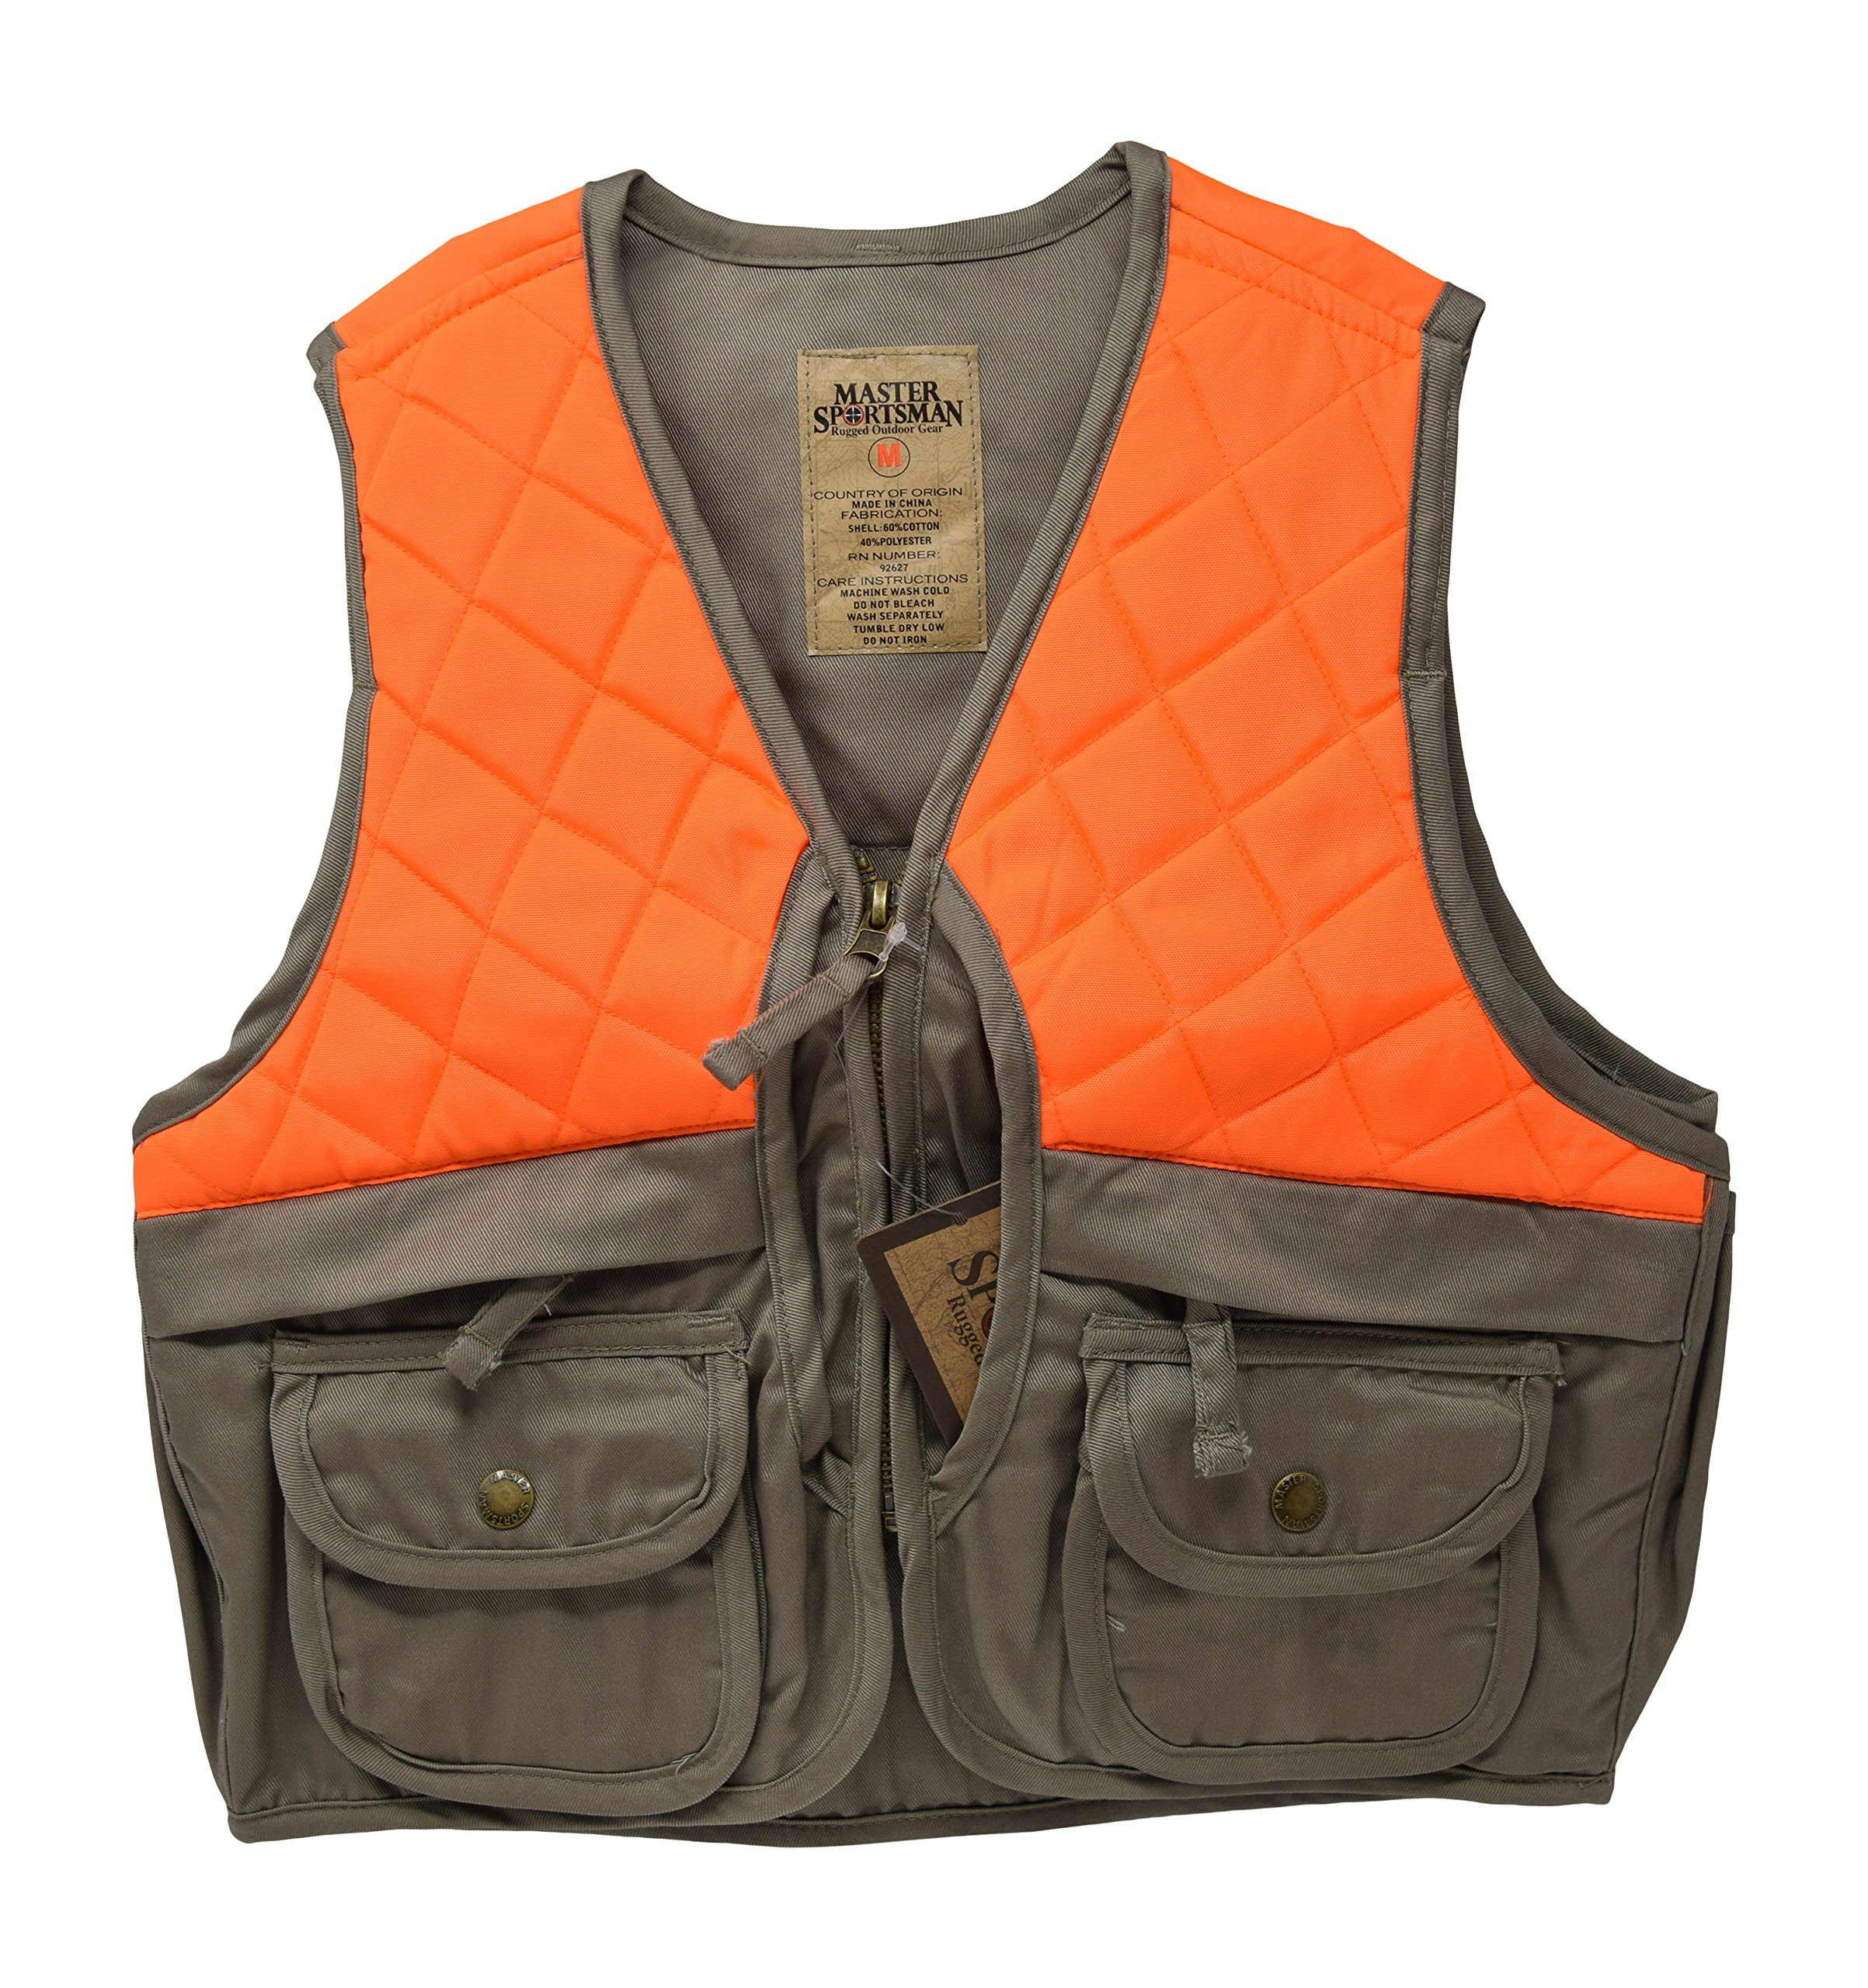 Nickanny's Sportsman Blaze Orange and Tan Youth Kids Field Shell Hunting Vest (Tan/Blaze, Large (10-12)) by Nickanny's